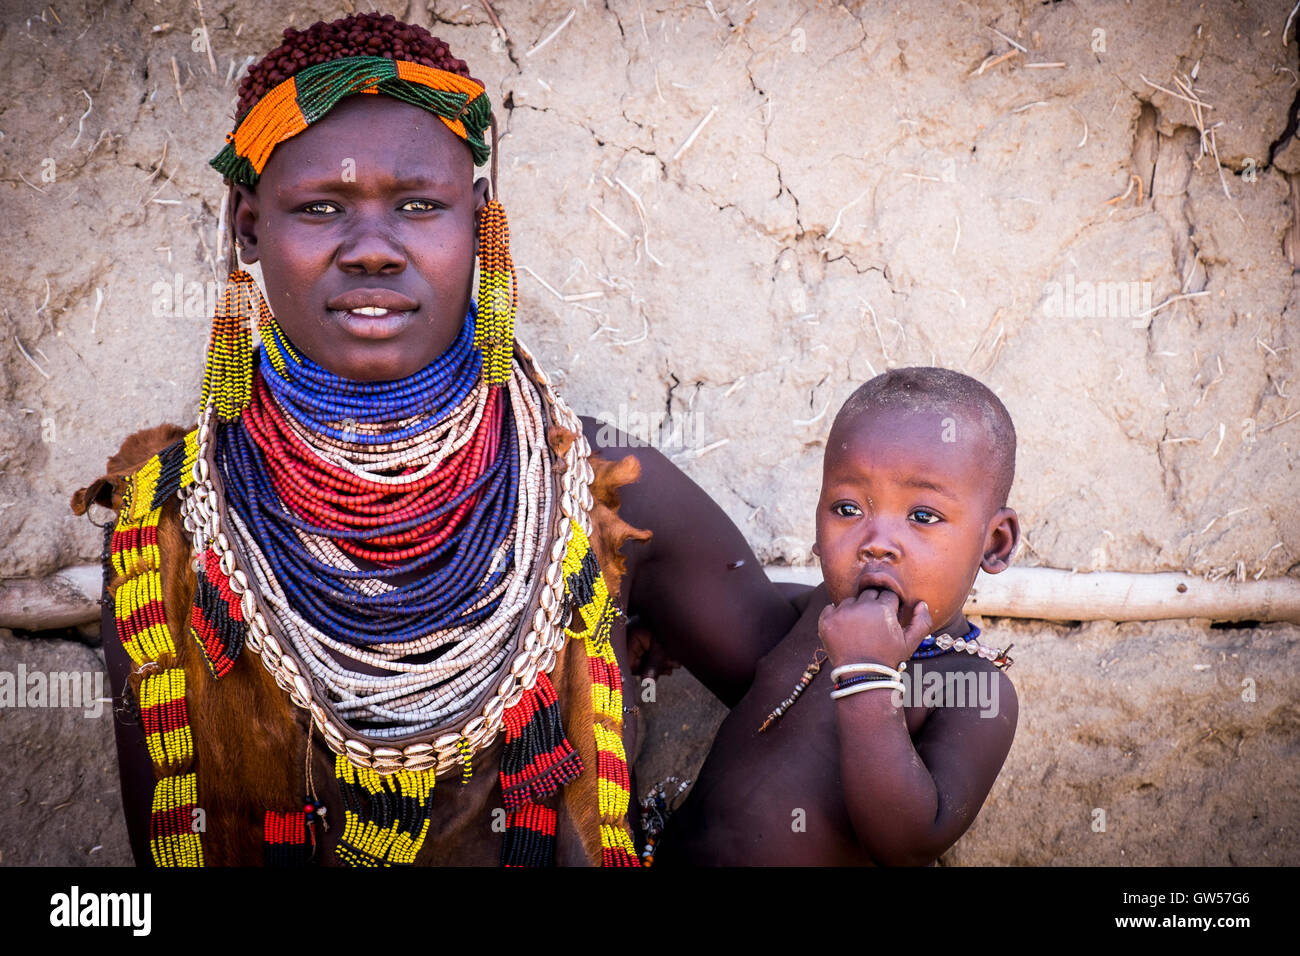 A woman and her child of the Karo tribe in the Omo Valley of Ethiopia.  She wears extensive beaded ornamentation. - Stock Image